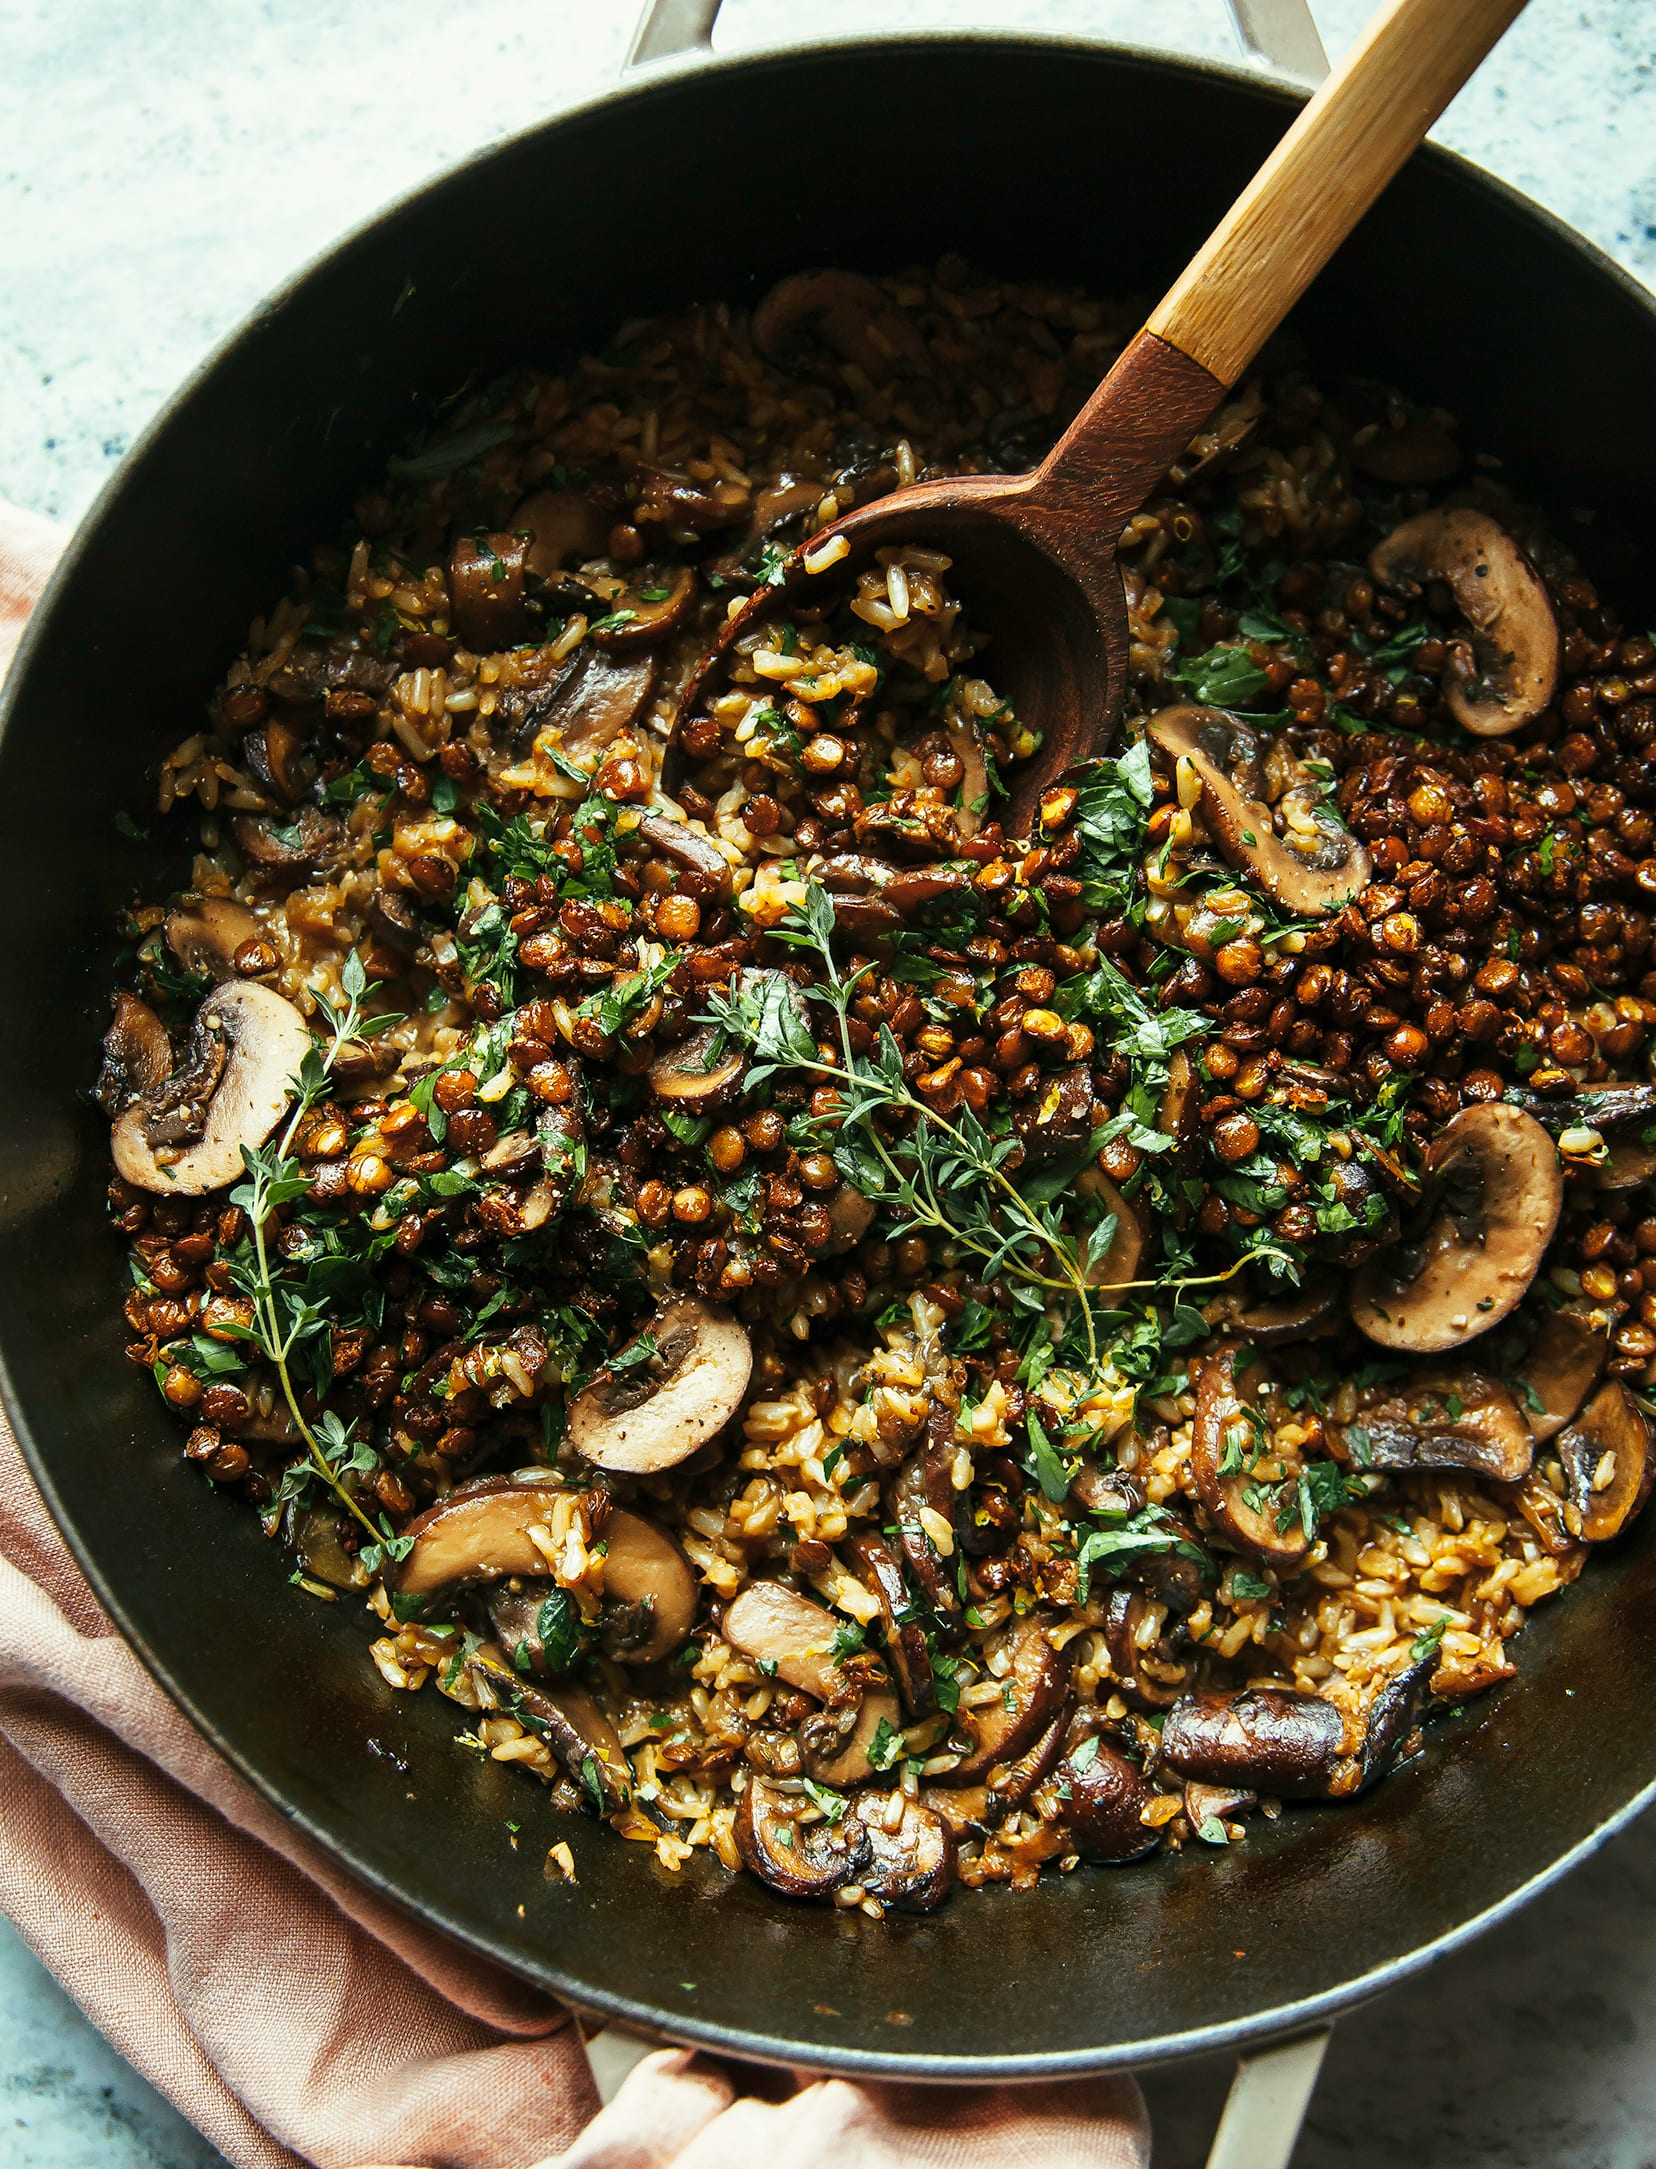 Mushroom Brown Rice Bake with Caramelized Shallots, Crispy Lentils & Gremolata